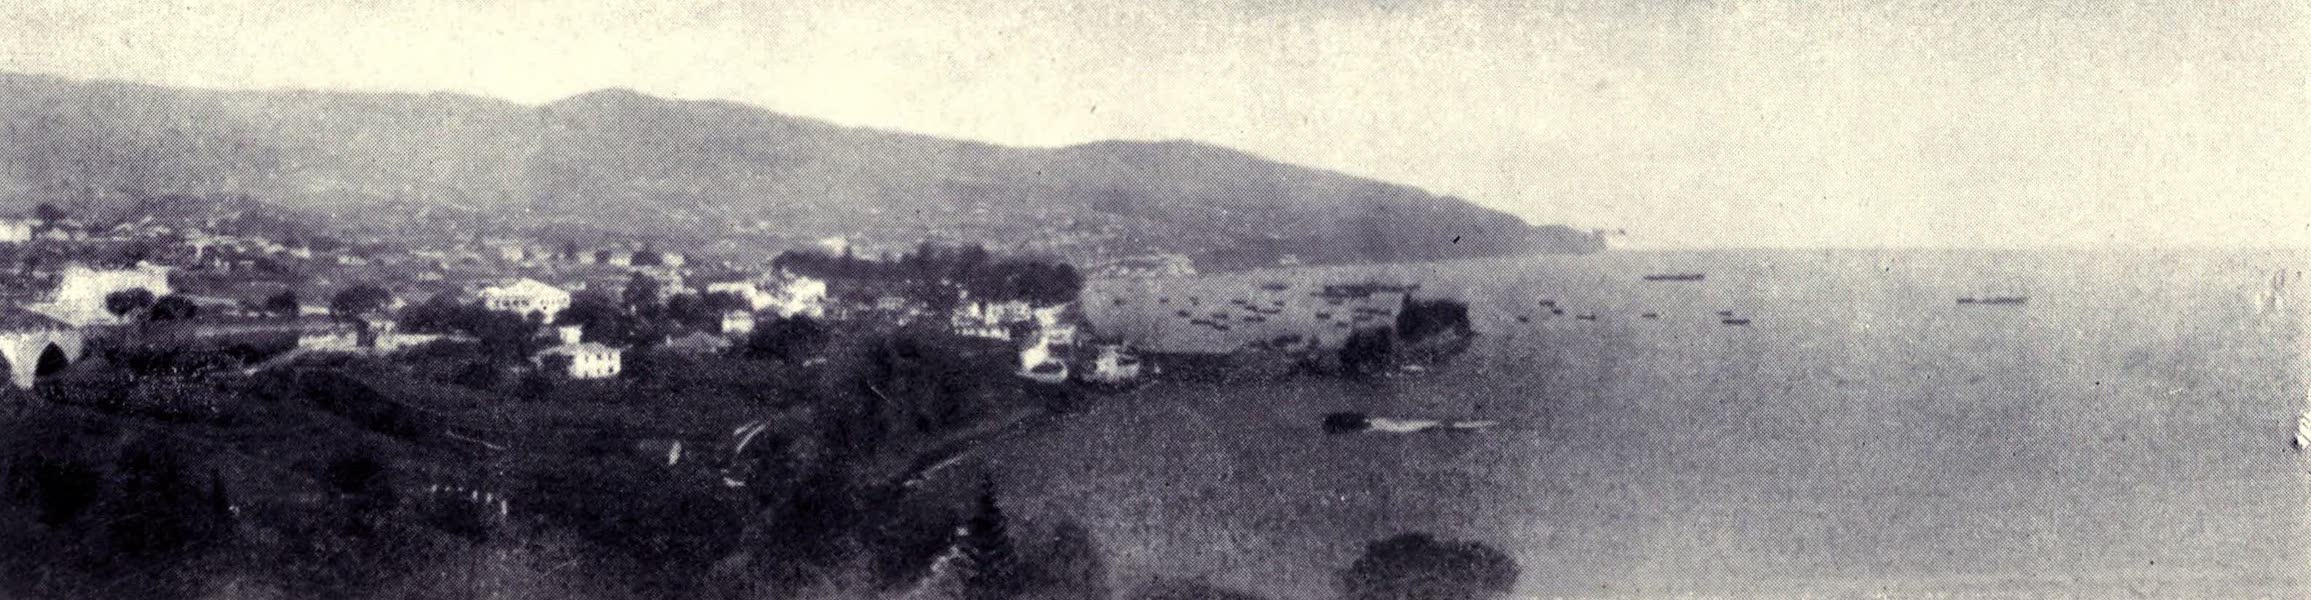 Madeira : Old and New - Funchal Bay from the West (1909)